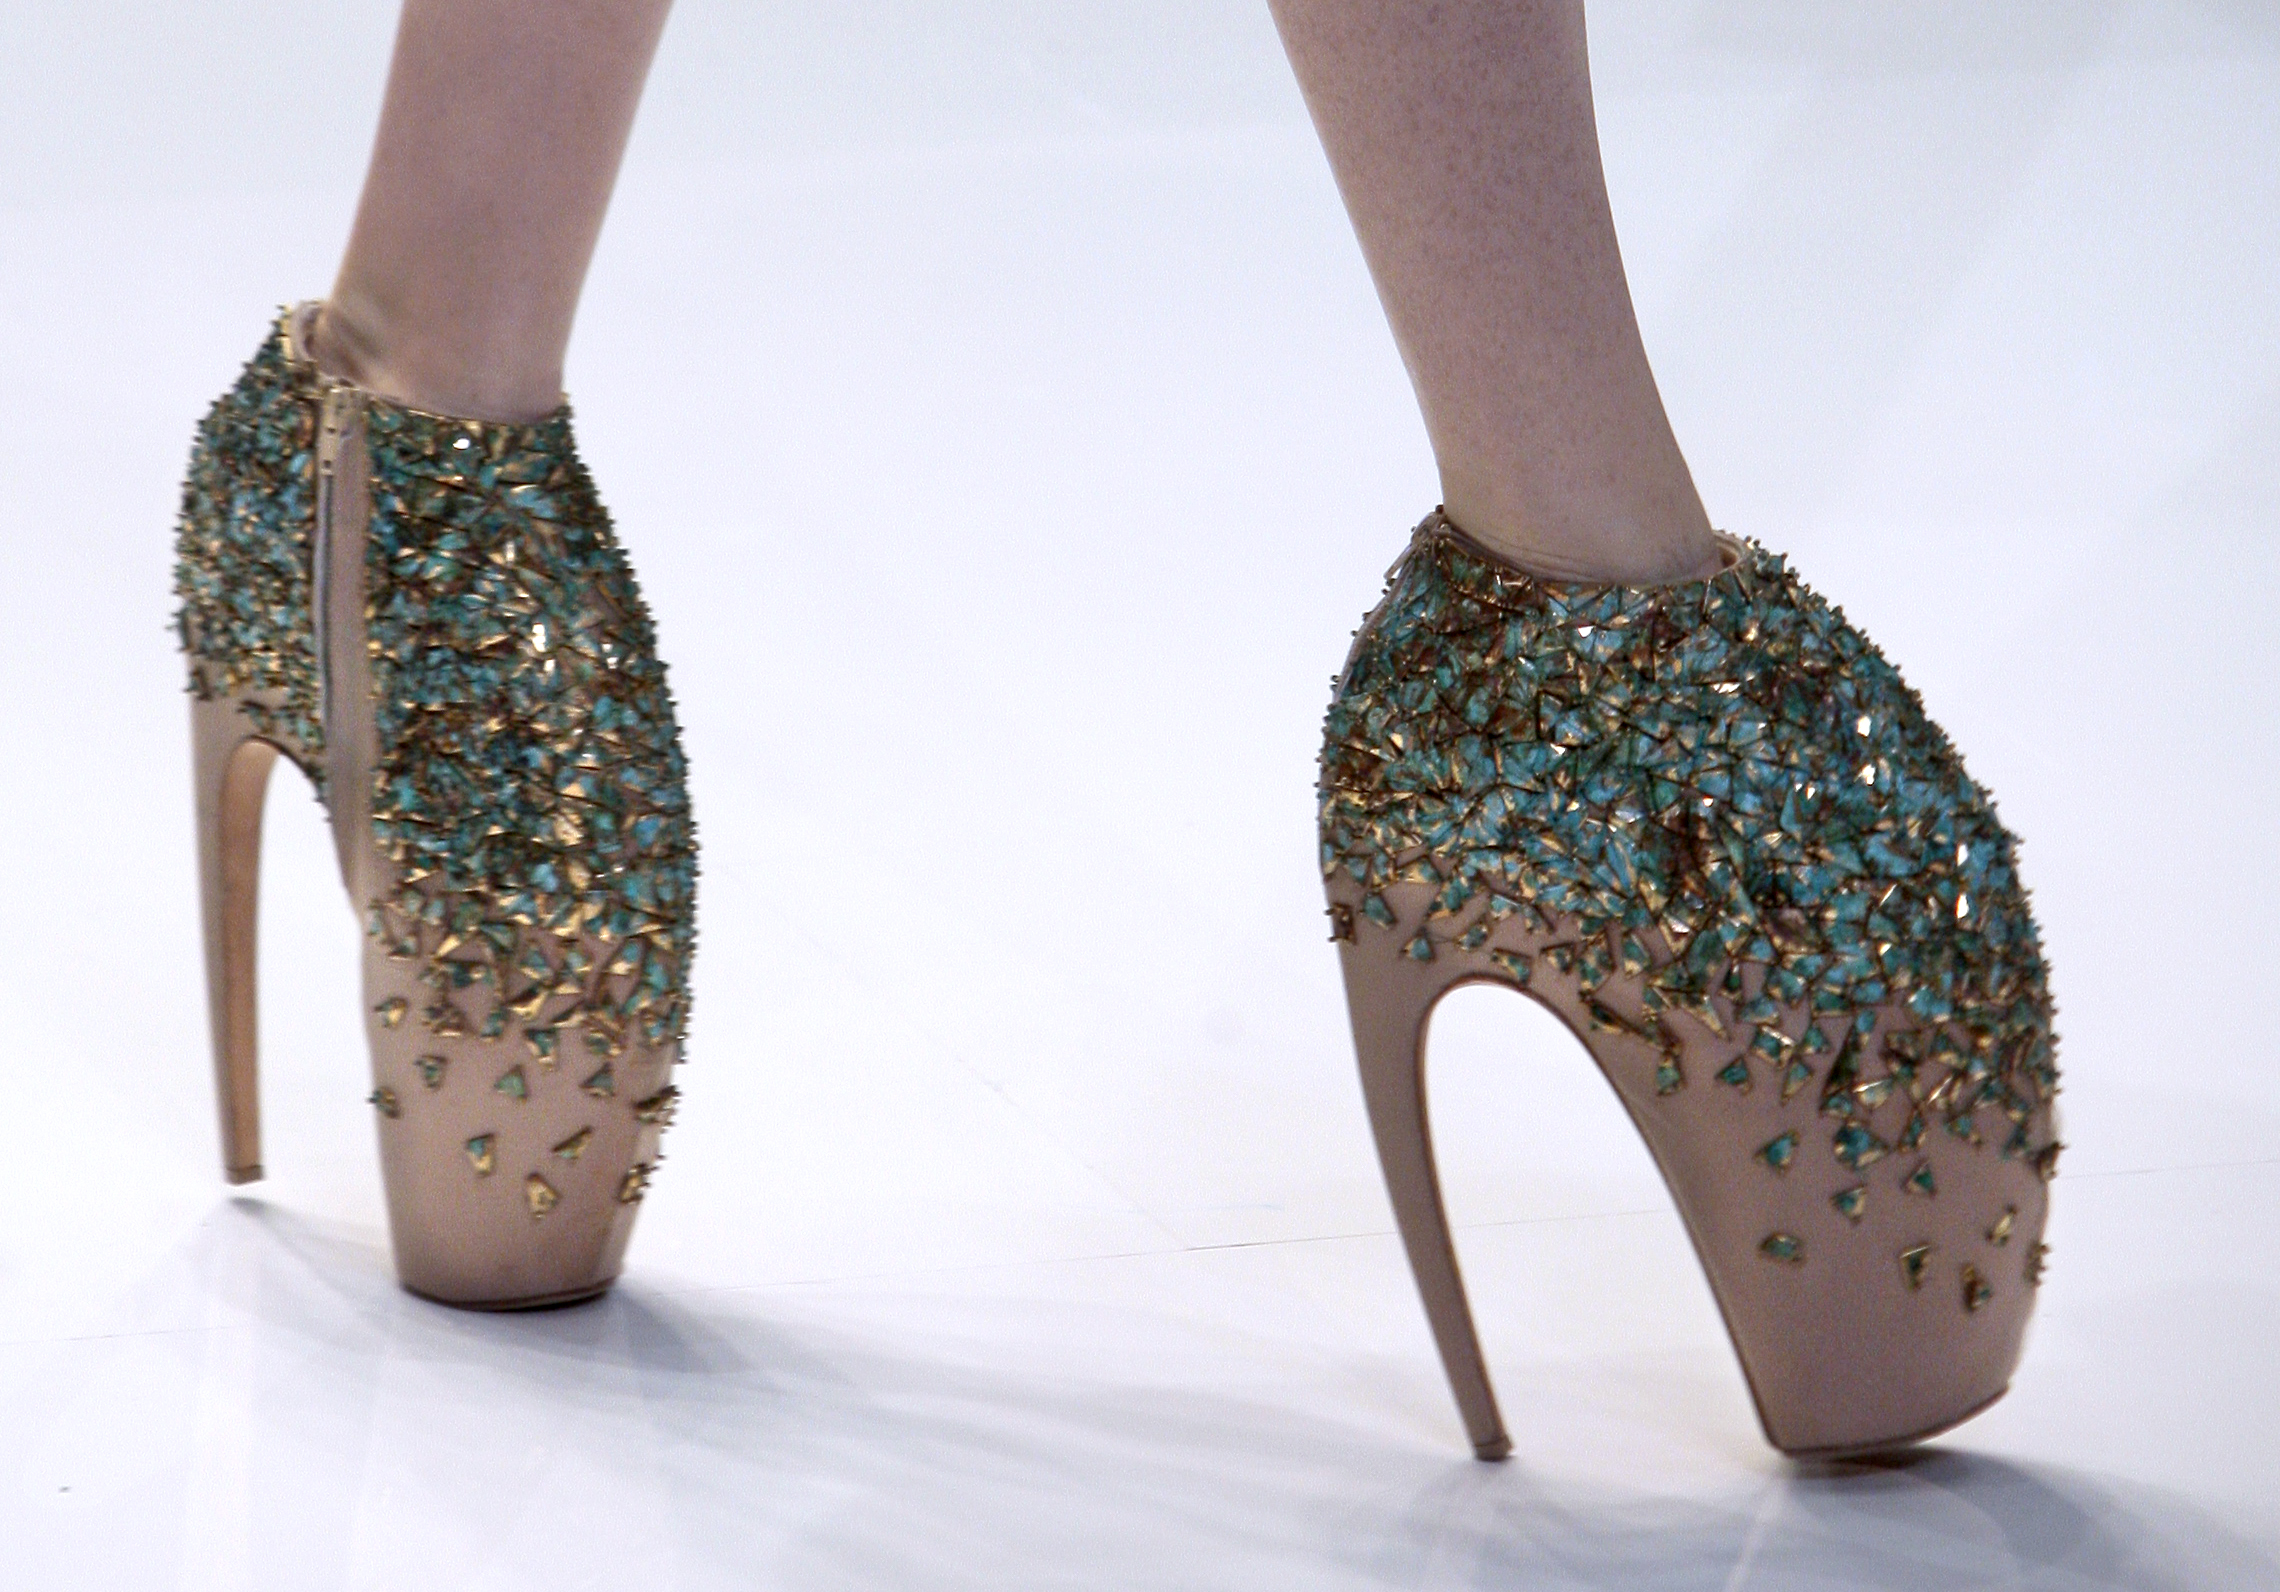 d7465e79744b Alexander McQueen Auctions Armadillo Shoes To Benefit The Relief Effort In  Nepal